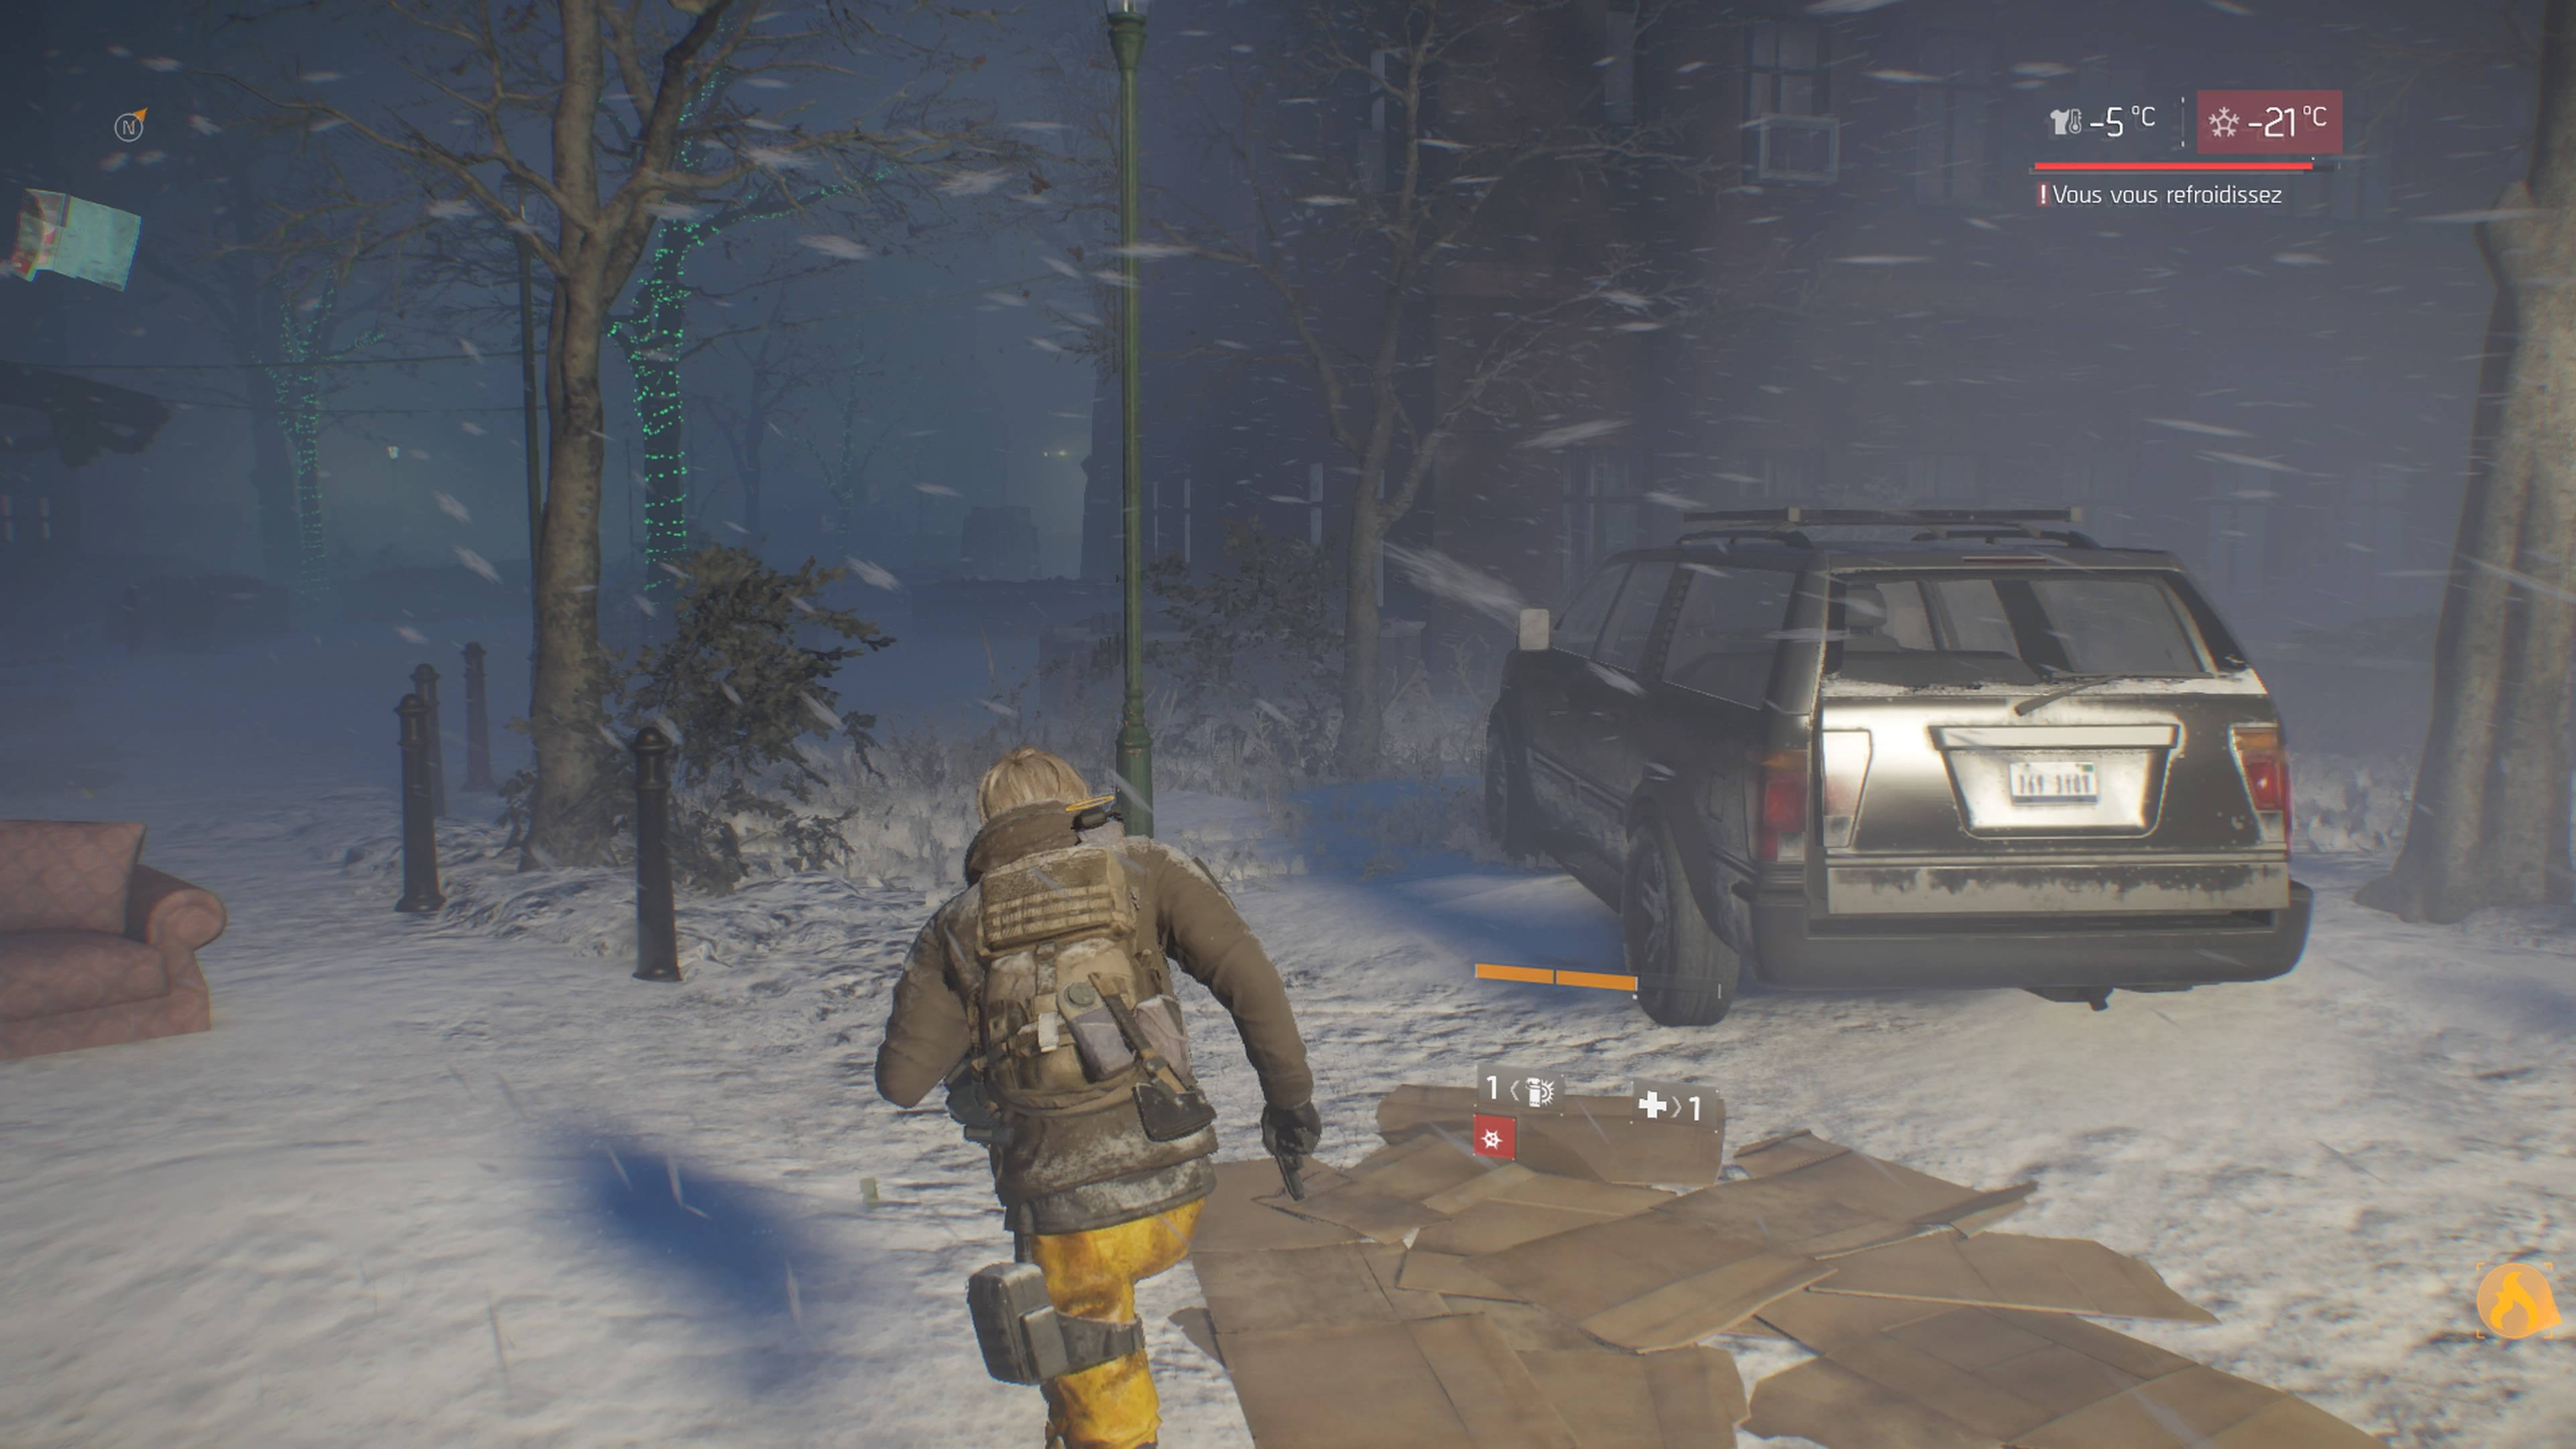 tomclancysthedivision_surviedlcscreens2_0016